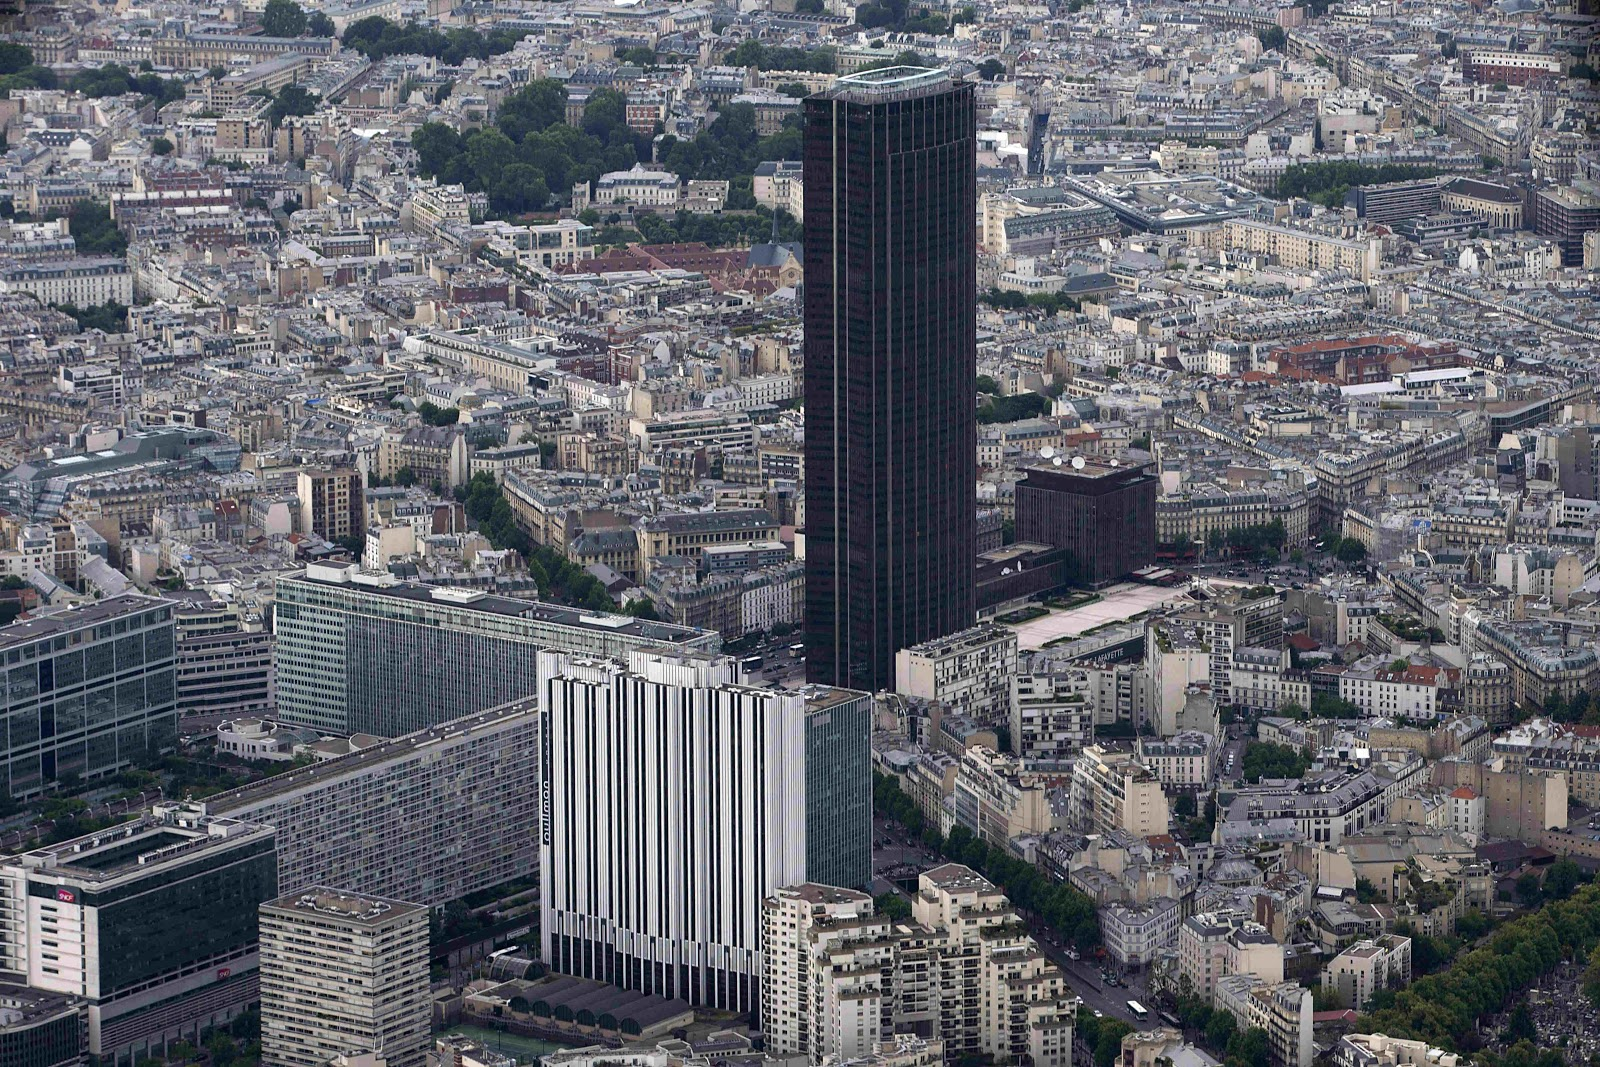 https://www.ammostravel.com/rollerblade-on-the-rooftop-of-paris-montparnasse-tower/